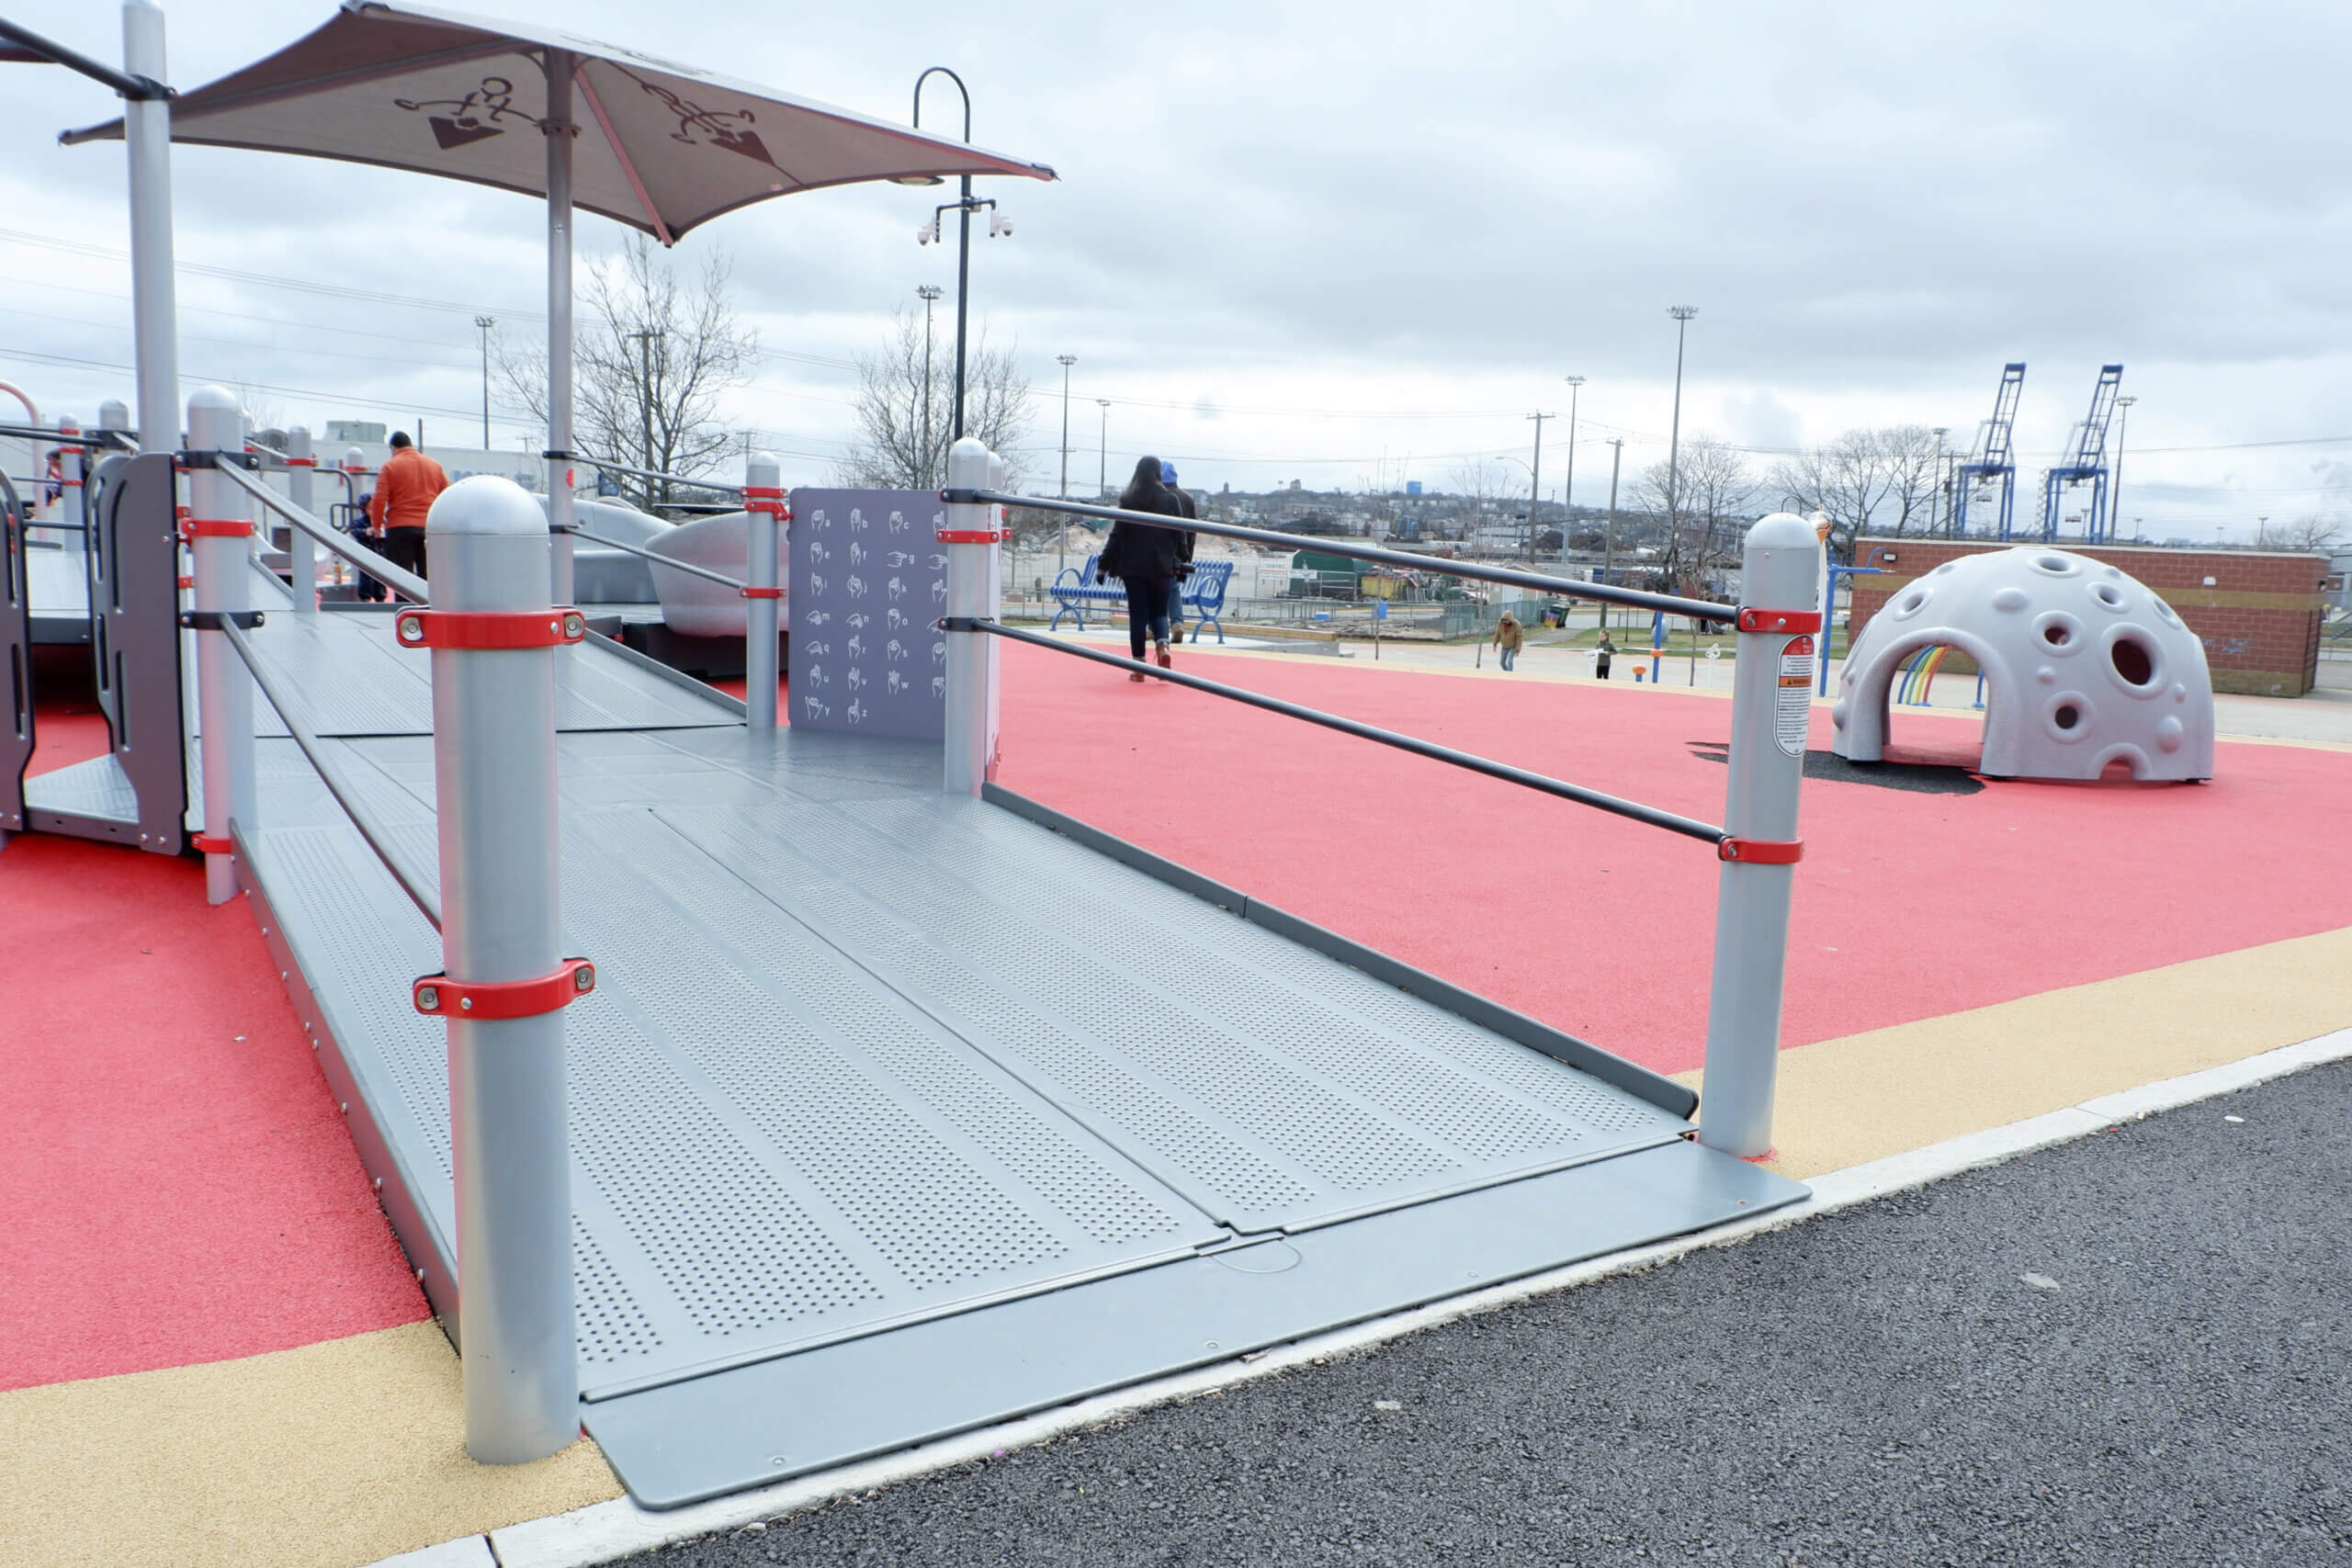 saint john rainbow park accessible inclusive playground double wide ramps rubberized ground pickle planet profile